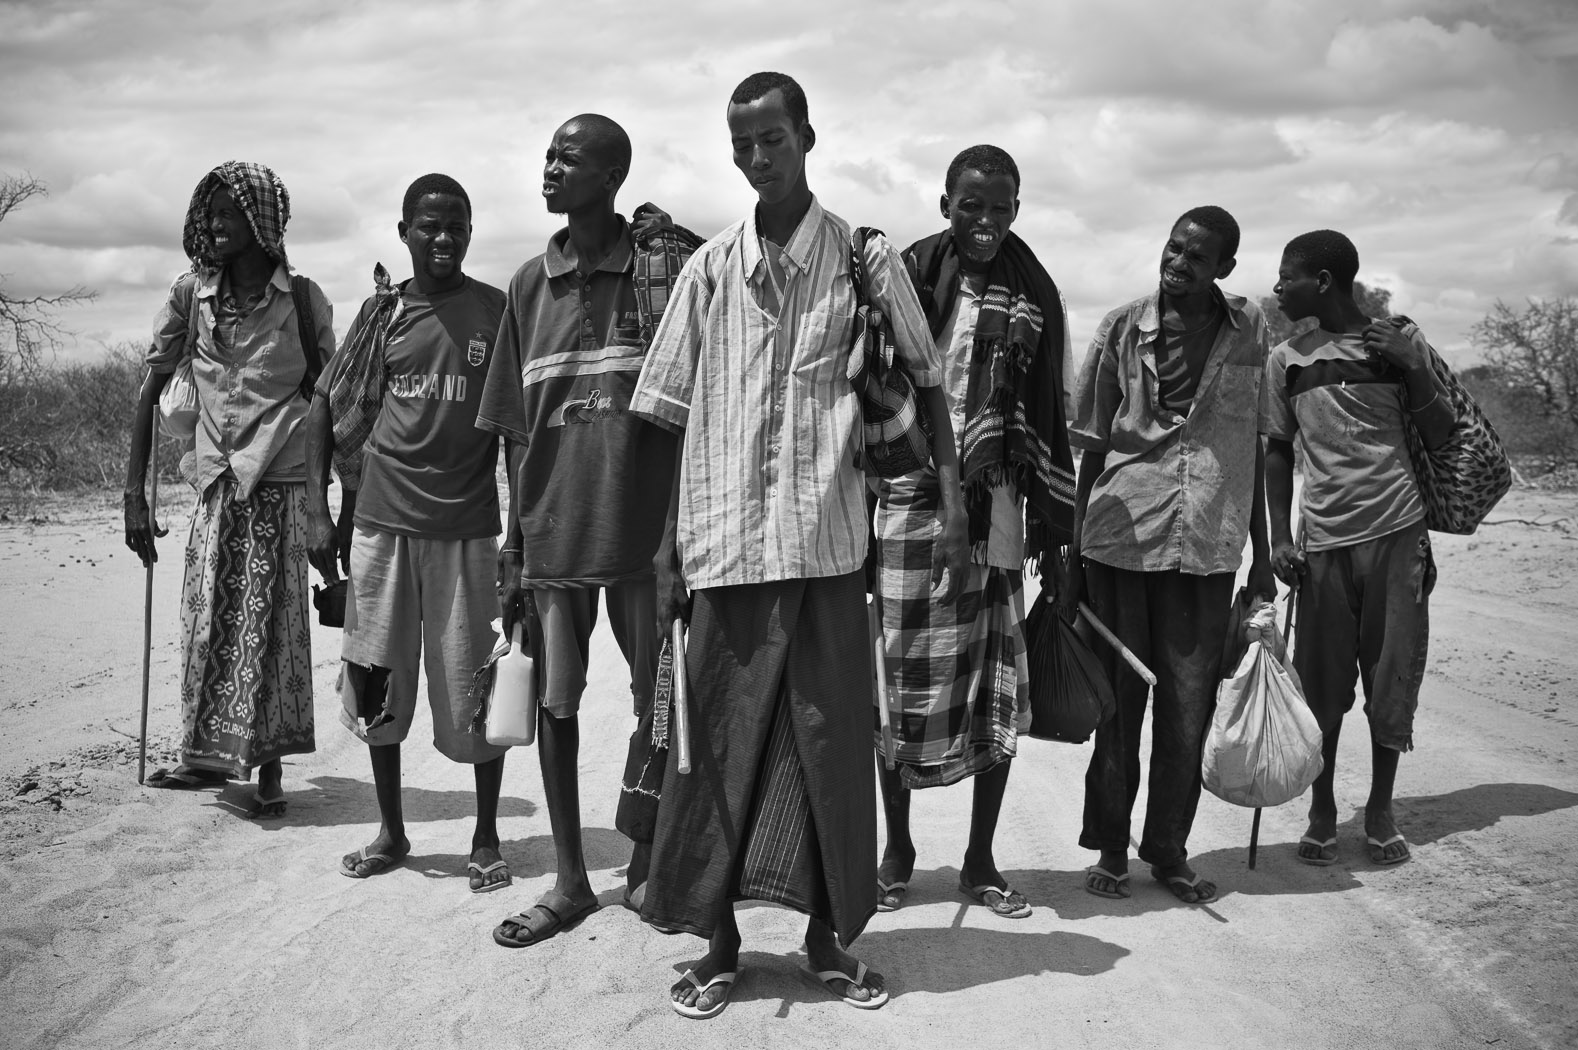 This group of seven men left their home in Dinsour, Somalia, fifteen days previously, and are walking to Kenya's Dadaab refugee complex. Their families have already made the journey, and they are hoping to be reunited with them, in one of the three camps that now house over 380,000 people. Here, they stand on the sand-road for this photograph, just half an hour after having crossed the Kenyan border, with still around 100km to walk before Dadaab.